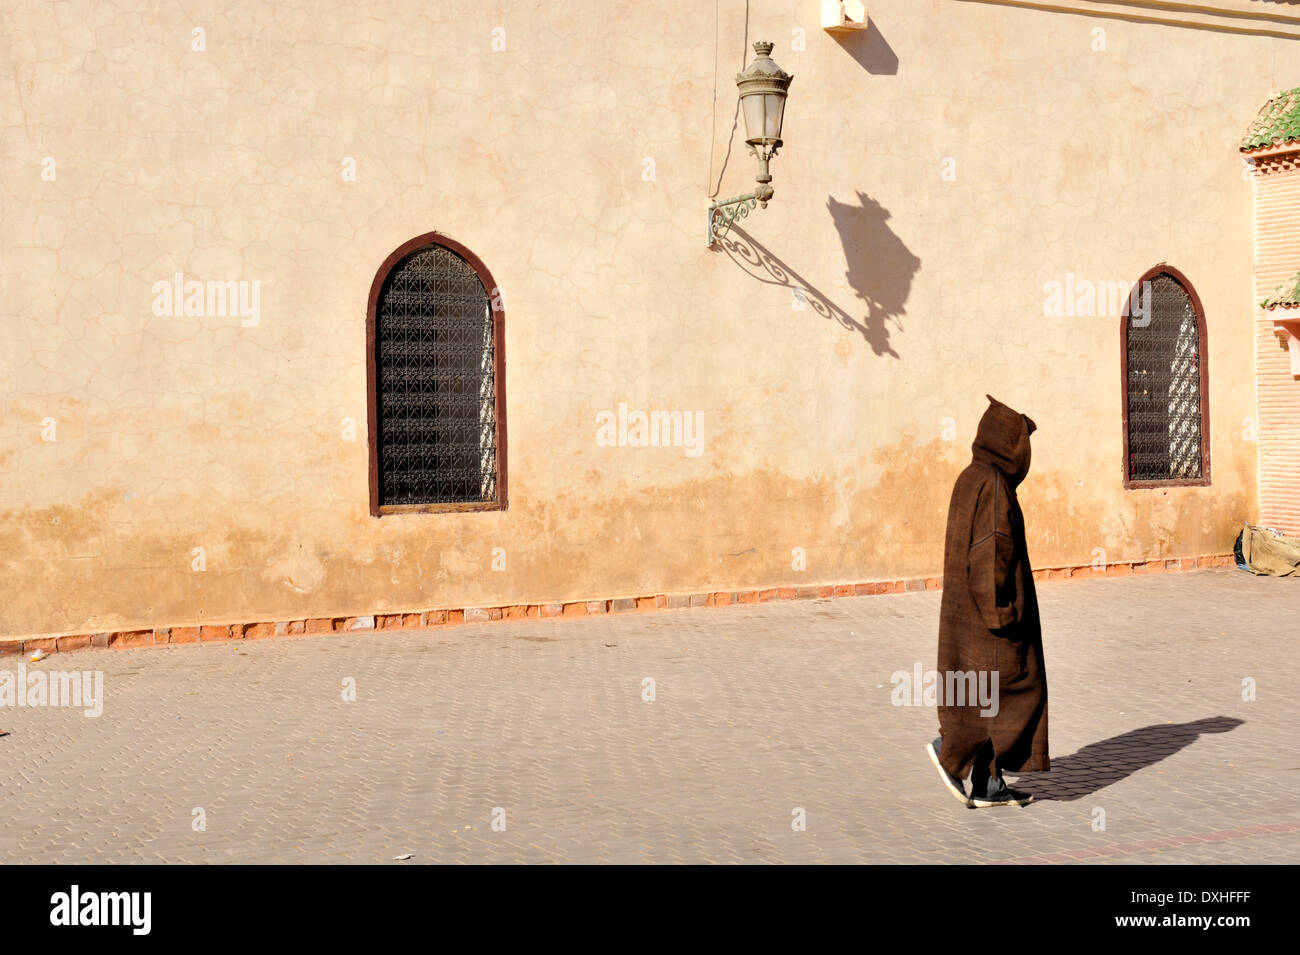 Berber, Moroccan, man in traditional hooded robe walking by wall, Marrakech, Morocco - Stock Image